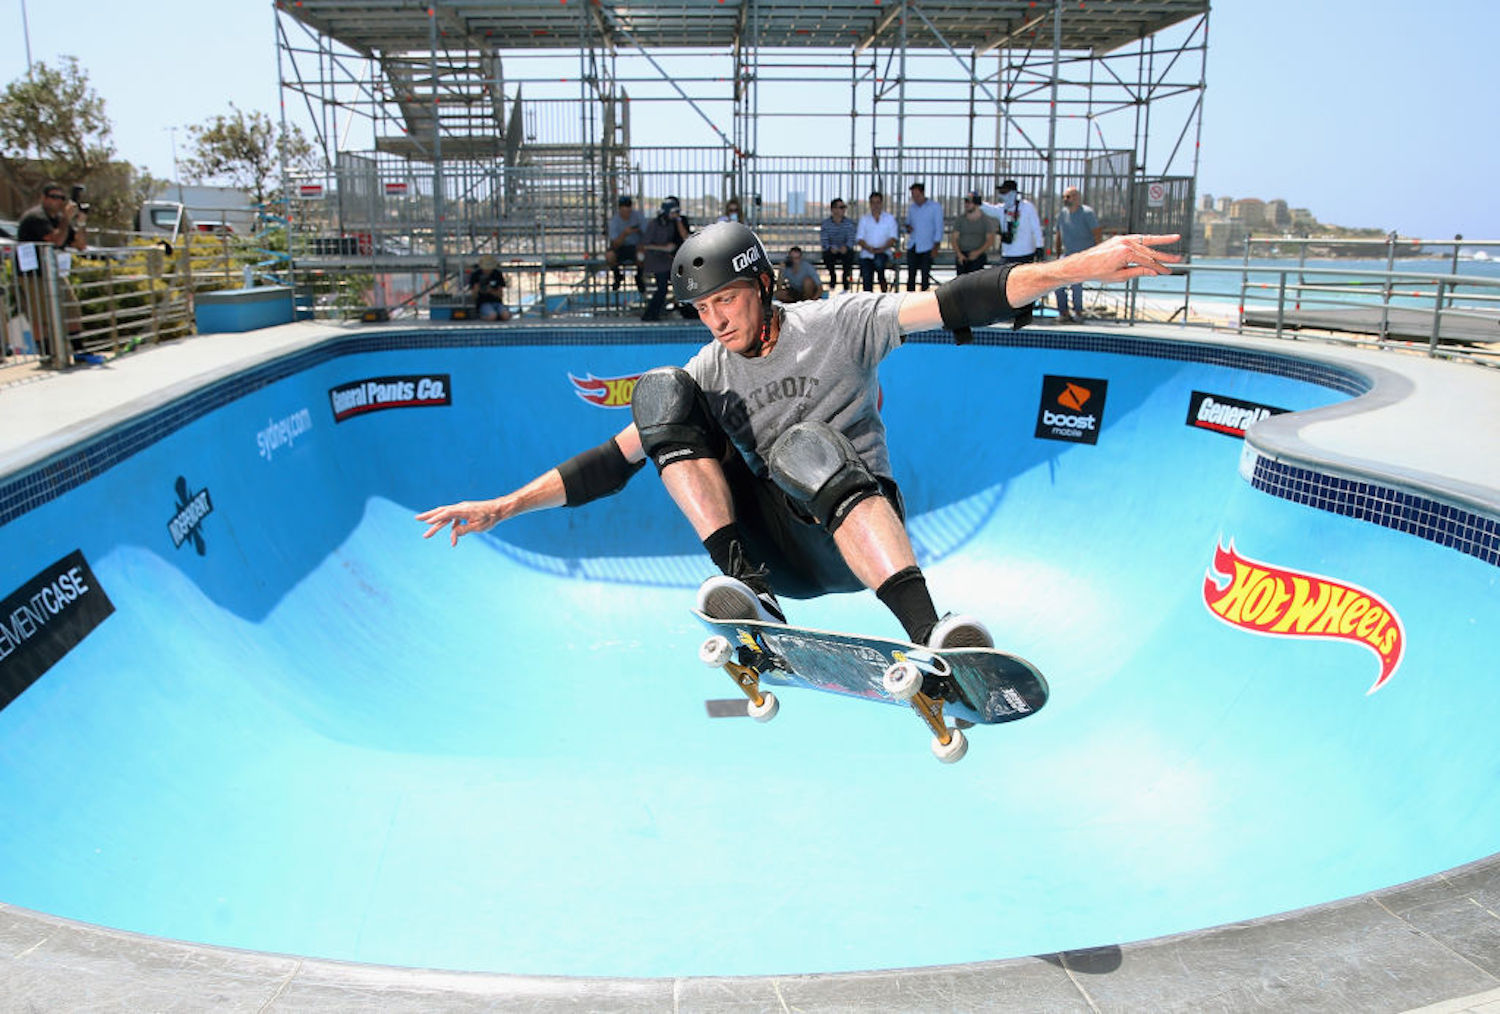 Tony Hawk Is Worth $140 Million, but He Used to Survive Off a $5-a-Day Taco Bell Allowance